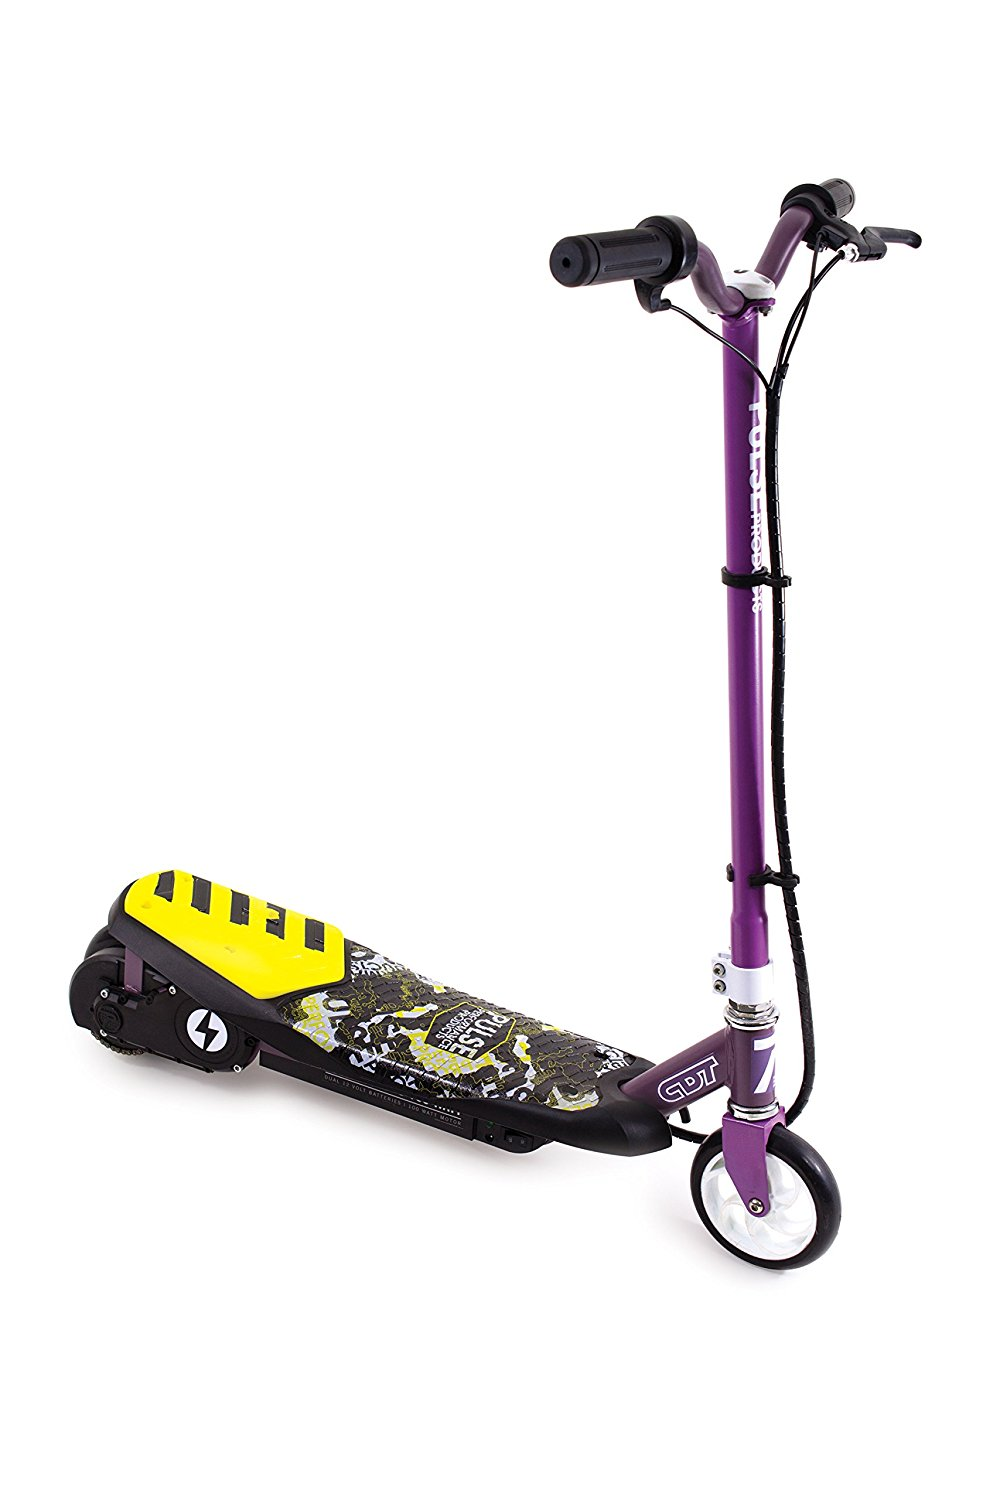 Best Electric Scooter For Adults Street Legal - Kids Scooter